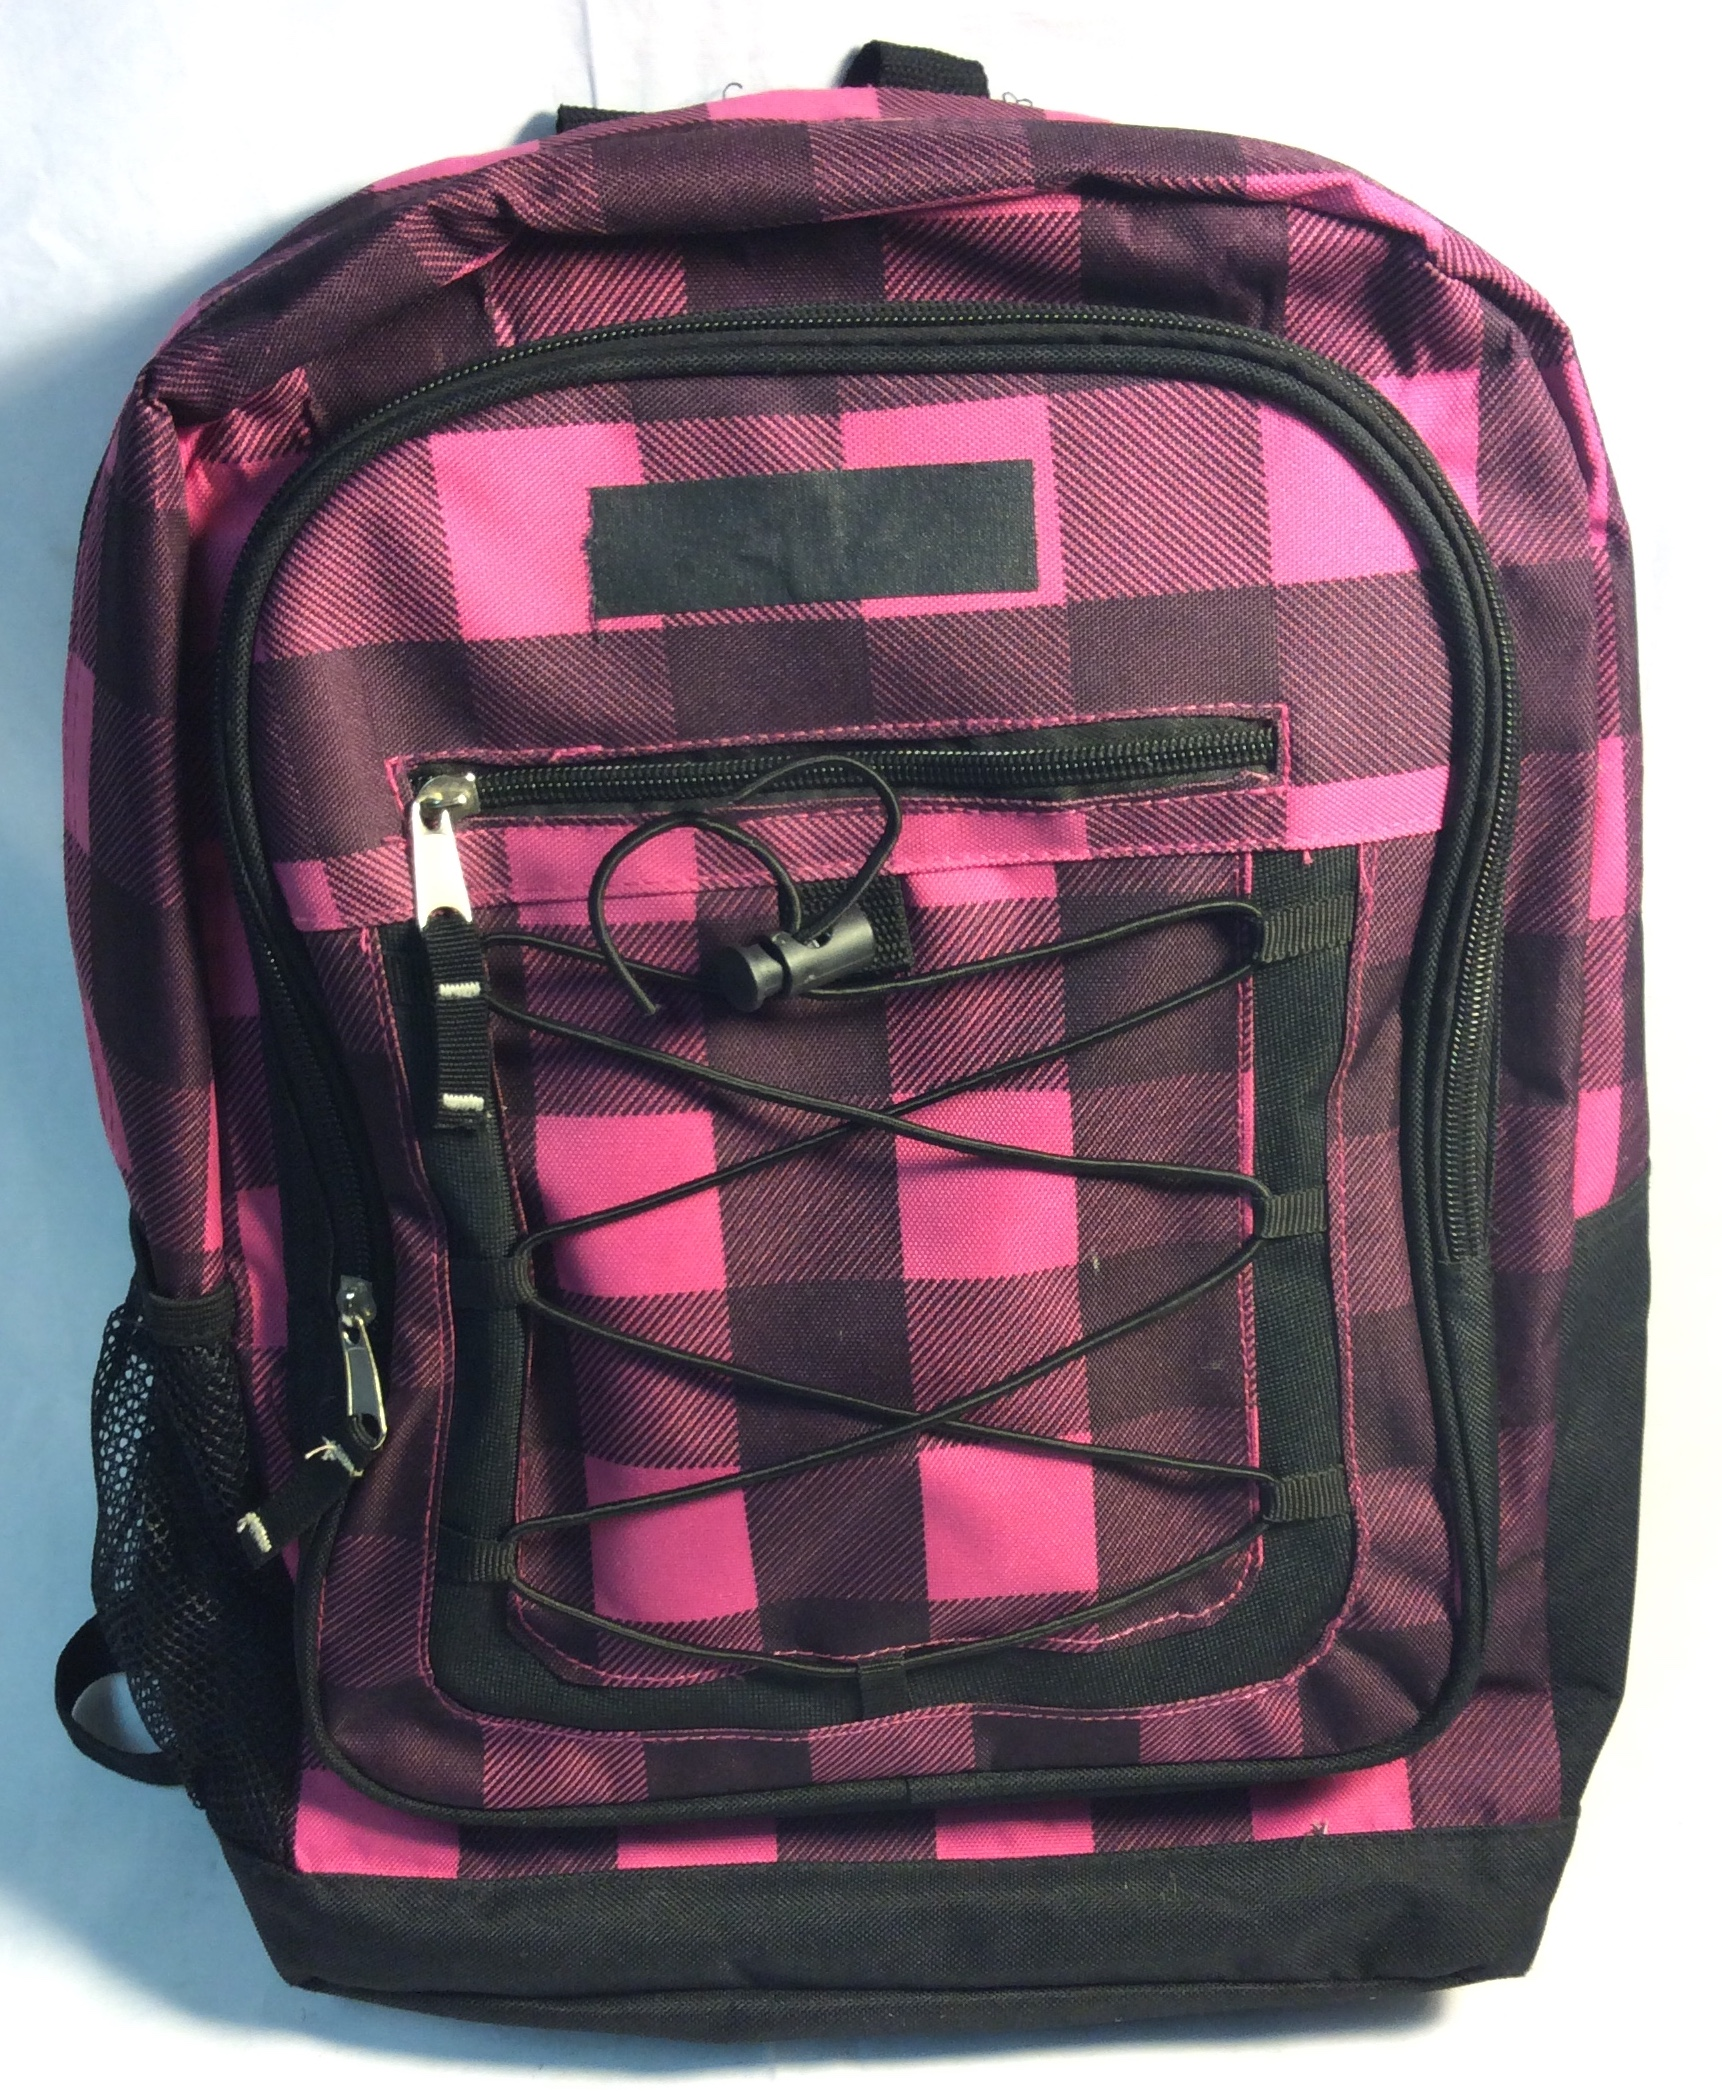 Pink and Black Checkered backpack